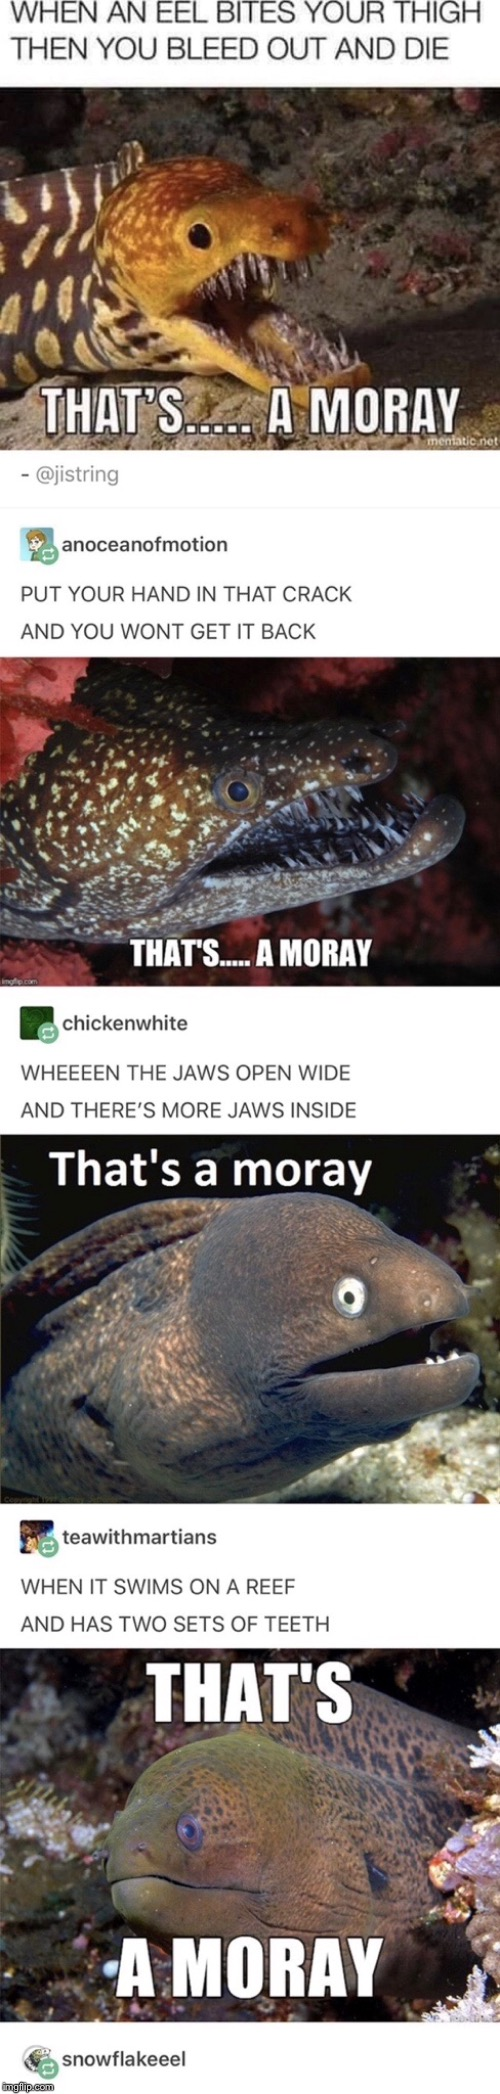 That's a moray | made w/ Imgflip meme maker